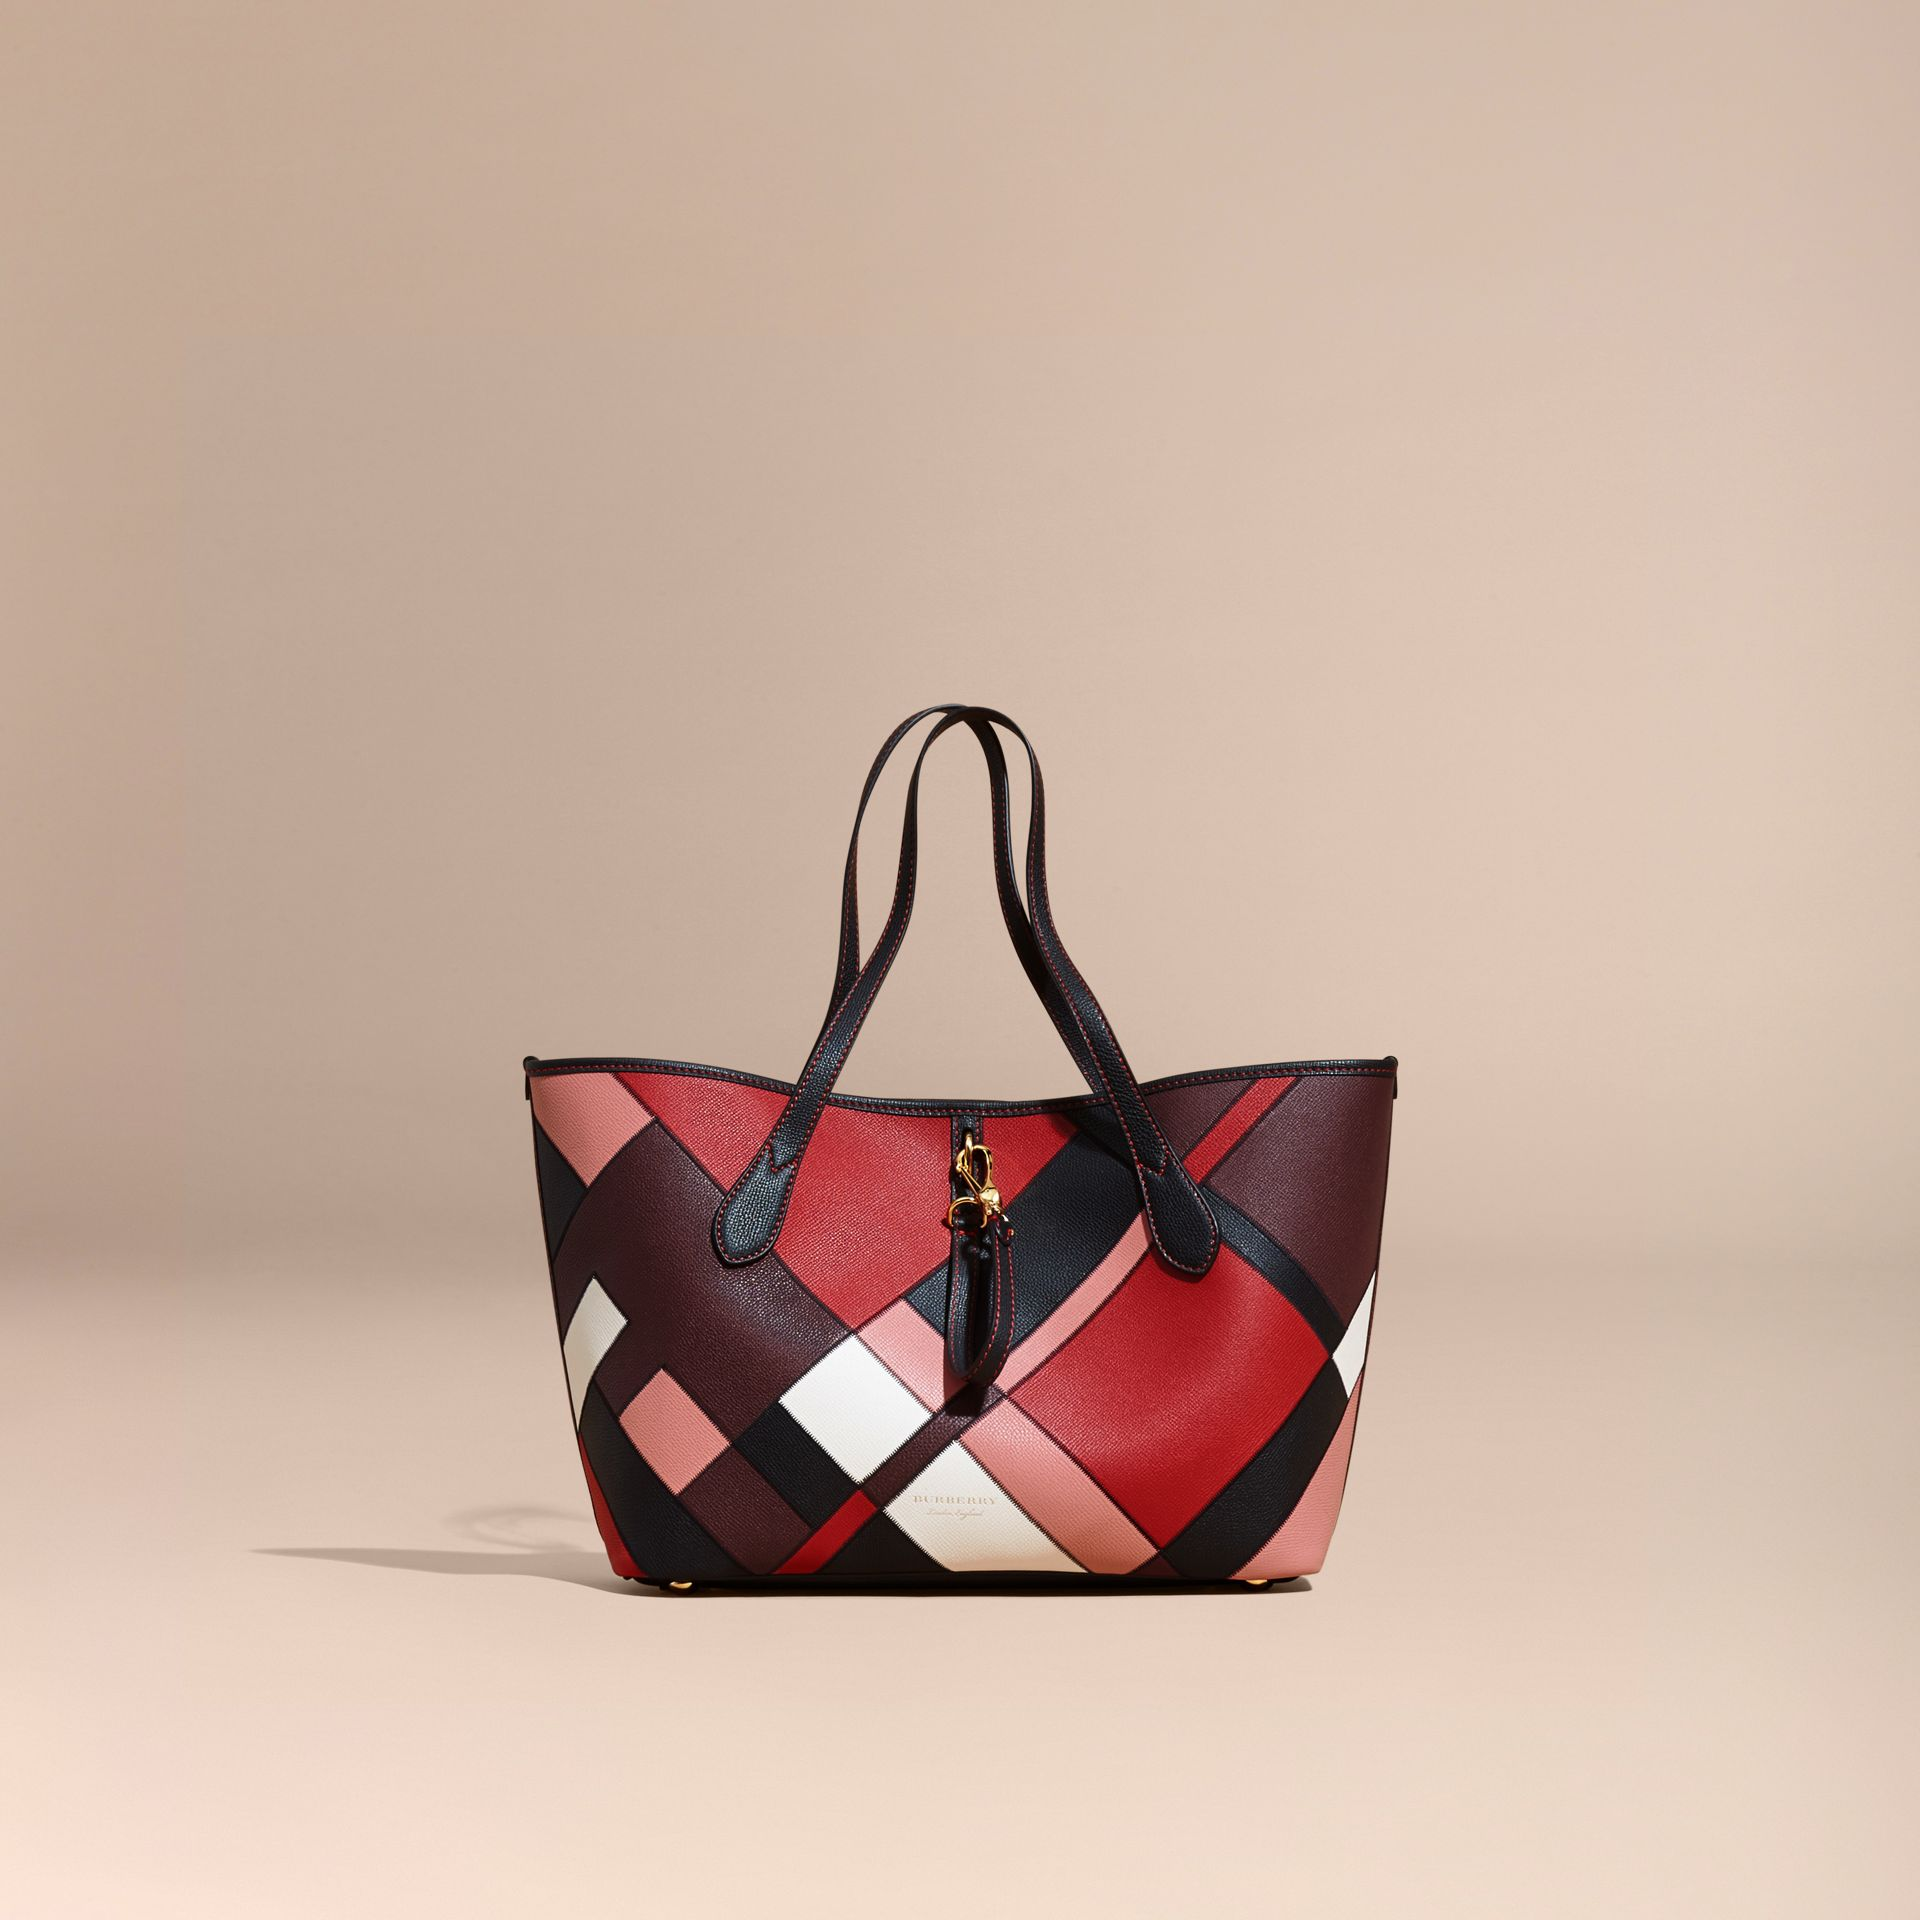 Medium Patchwork Grainy Leather Tote Bag in Pink - Women | Burberry Hong Kong - gallery image 8